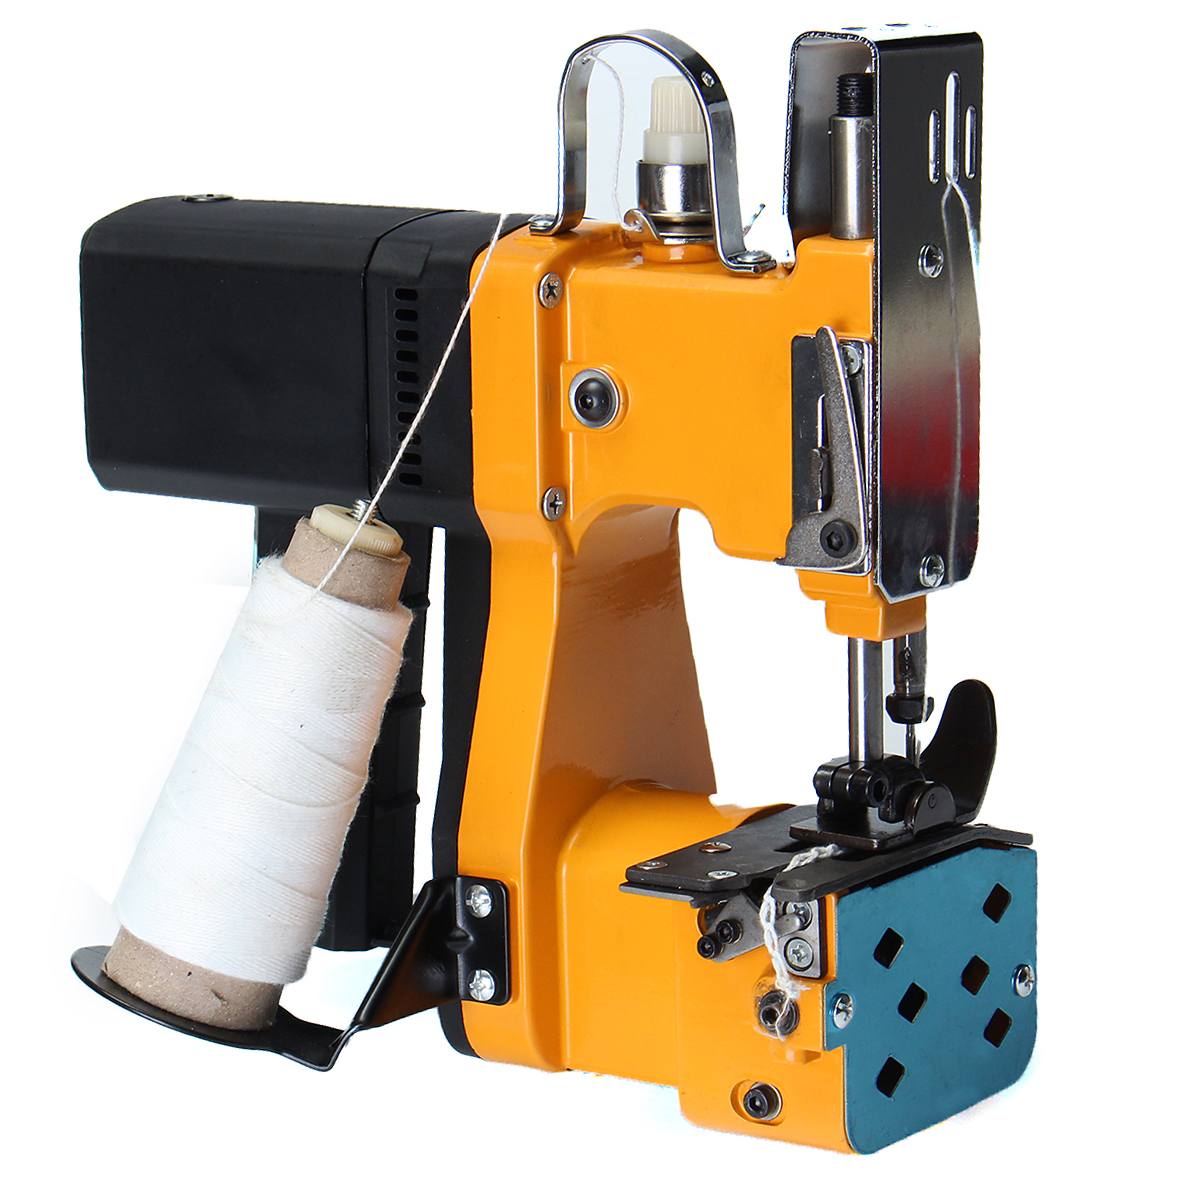 220V Portable Electric Sewing Machine Sealing Machines Industrial Cloth Tools